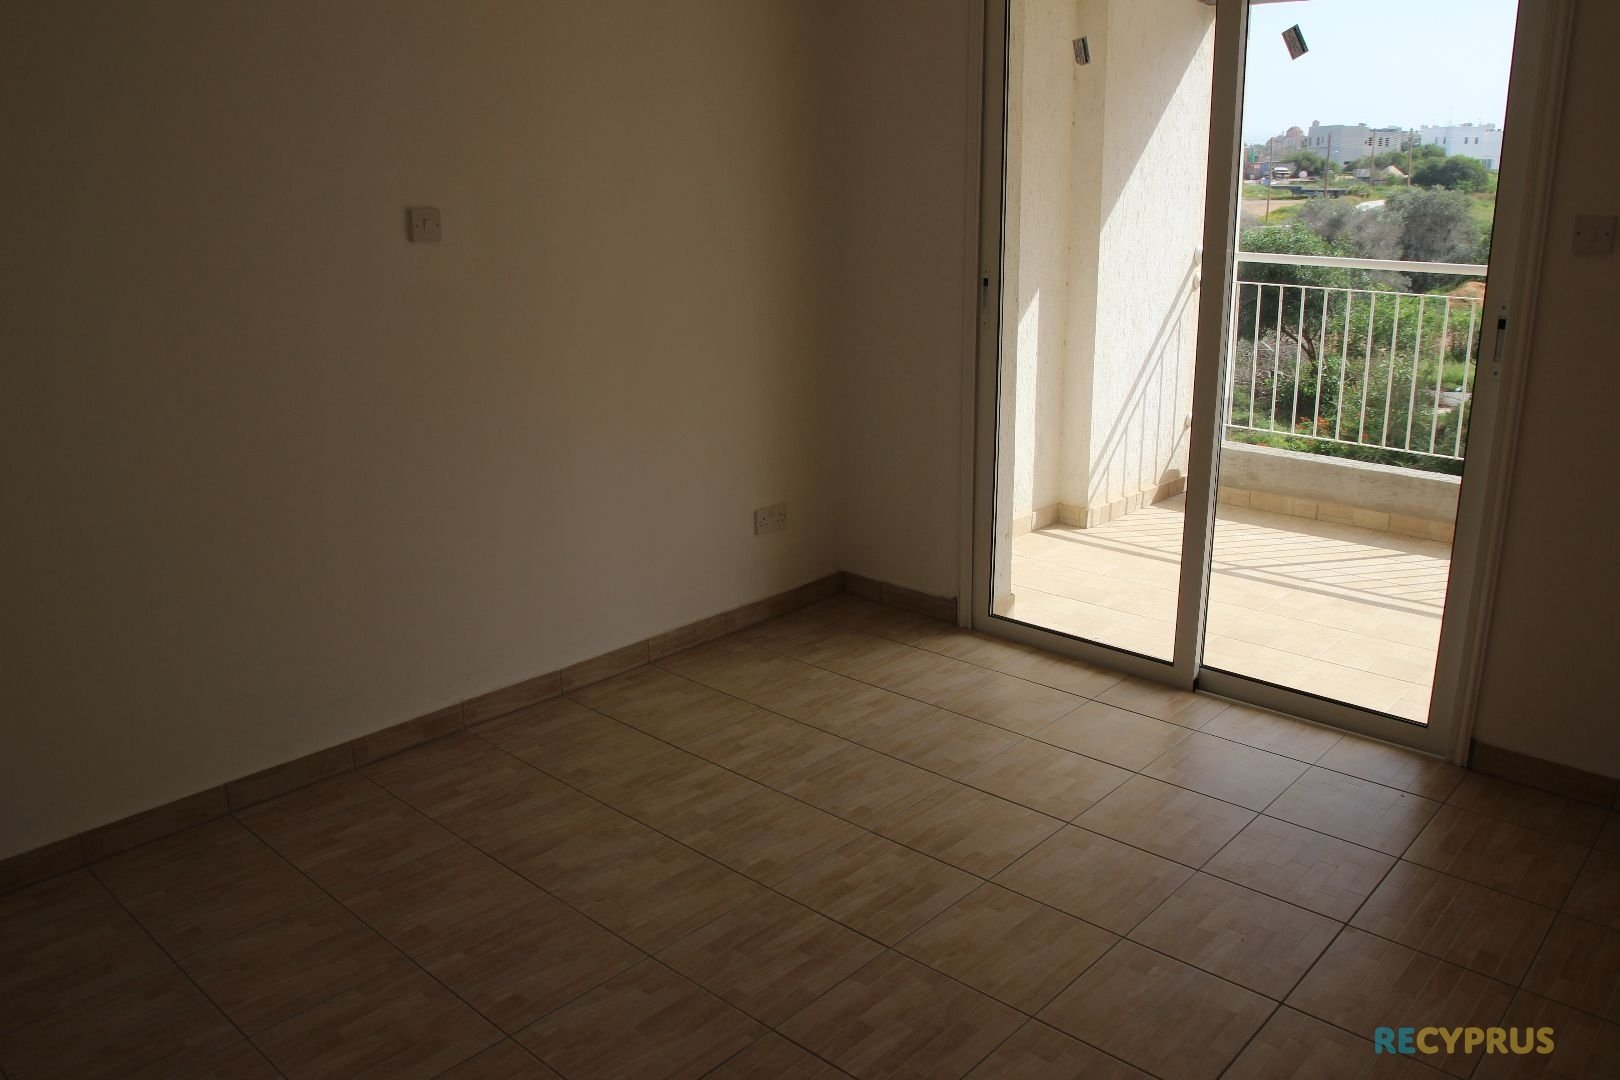 Apartment for sale Kapparis Famagusta Cyprus 9 3519